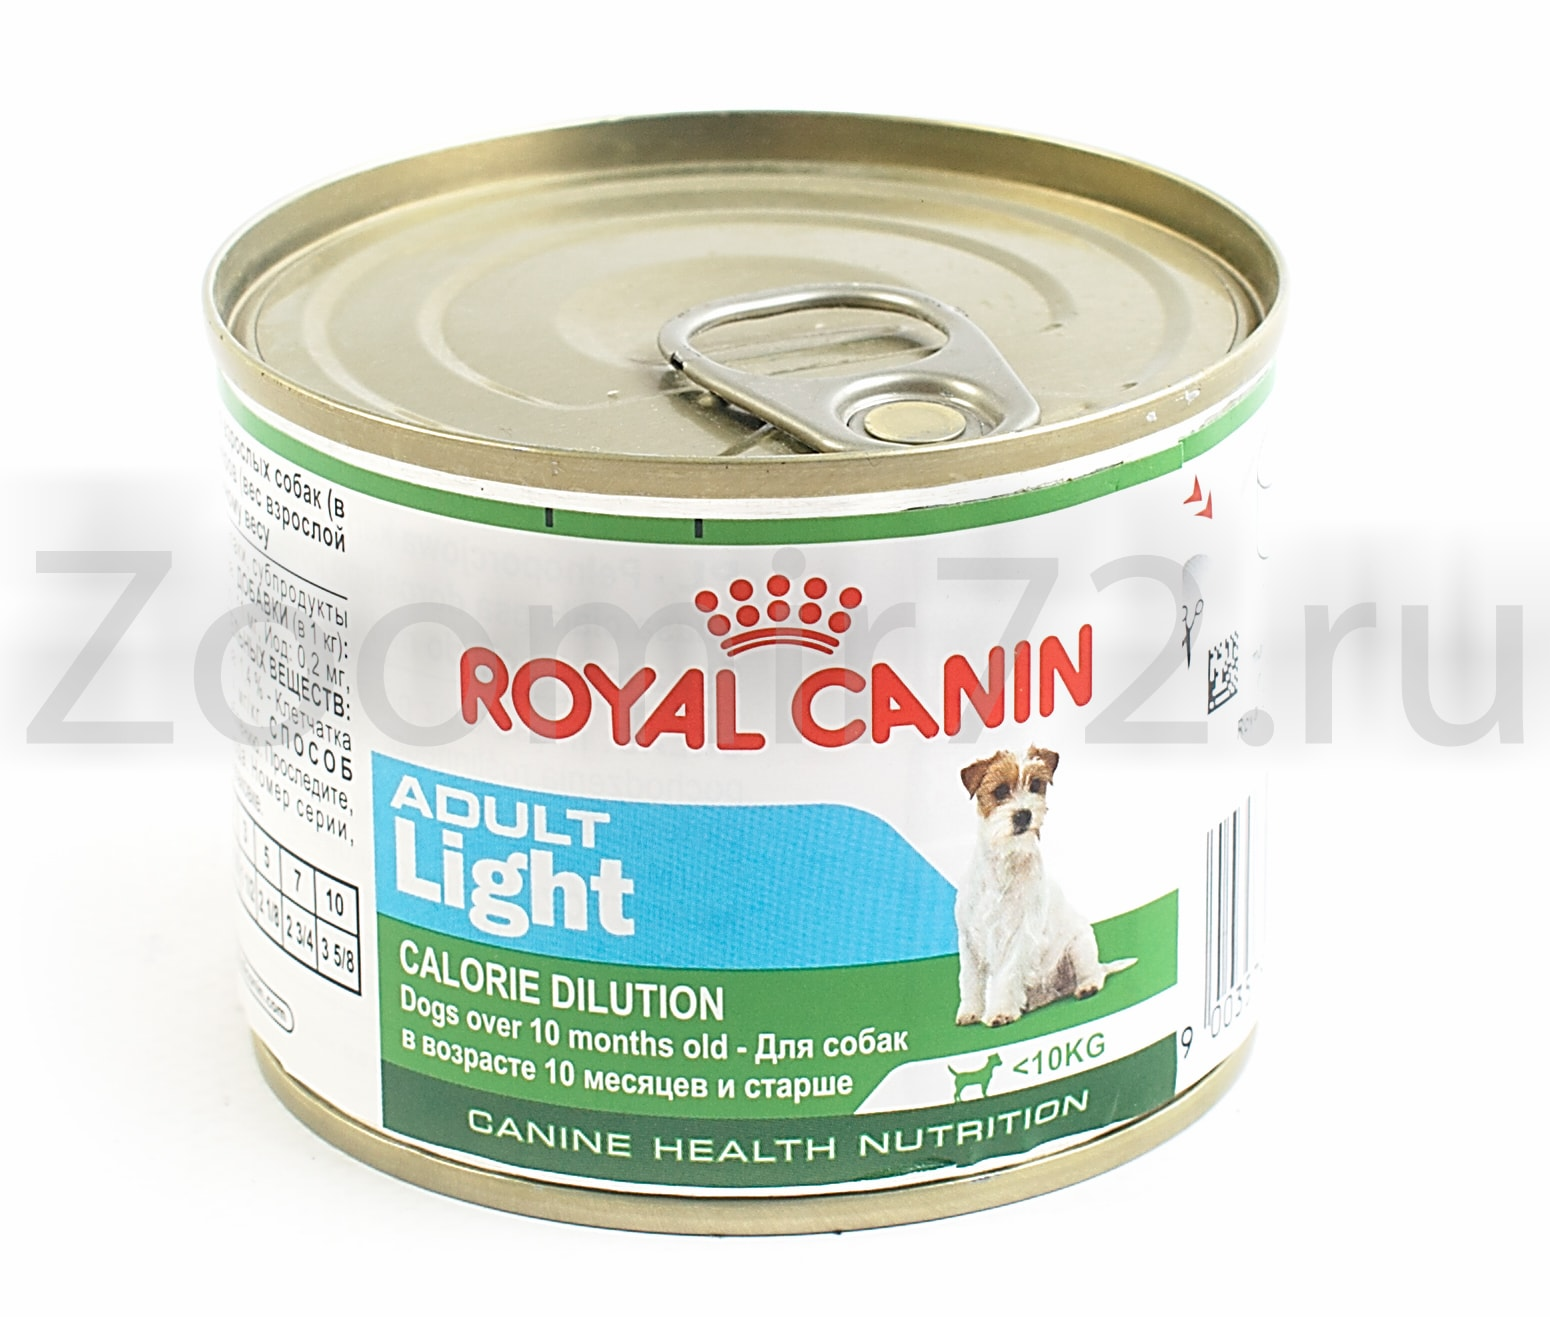 Корм для собак Royal canin Лайт мусс, 0,195 кг